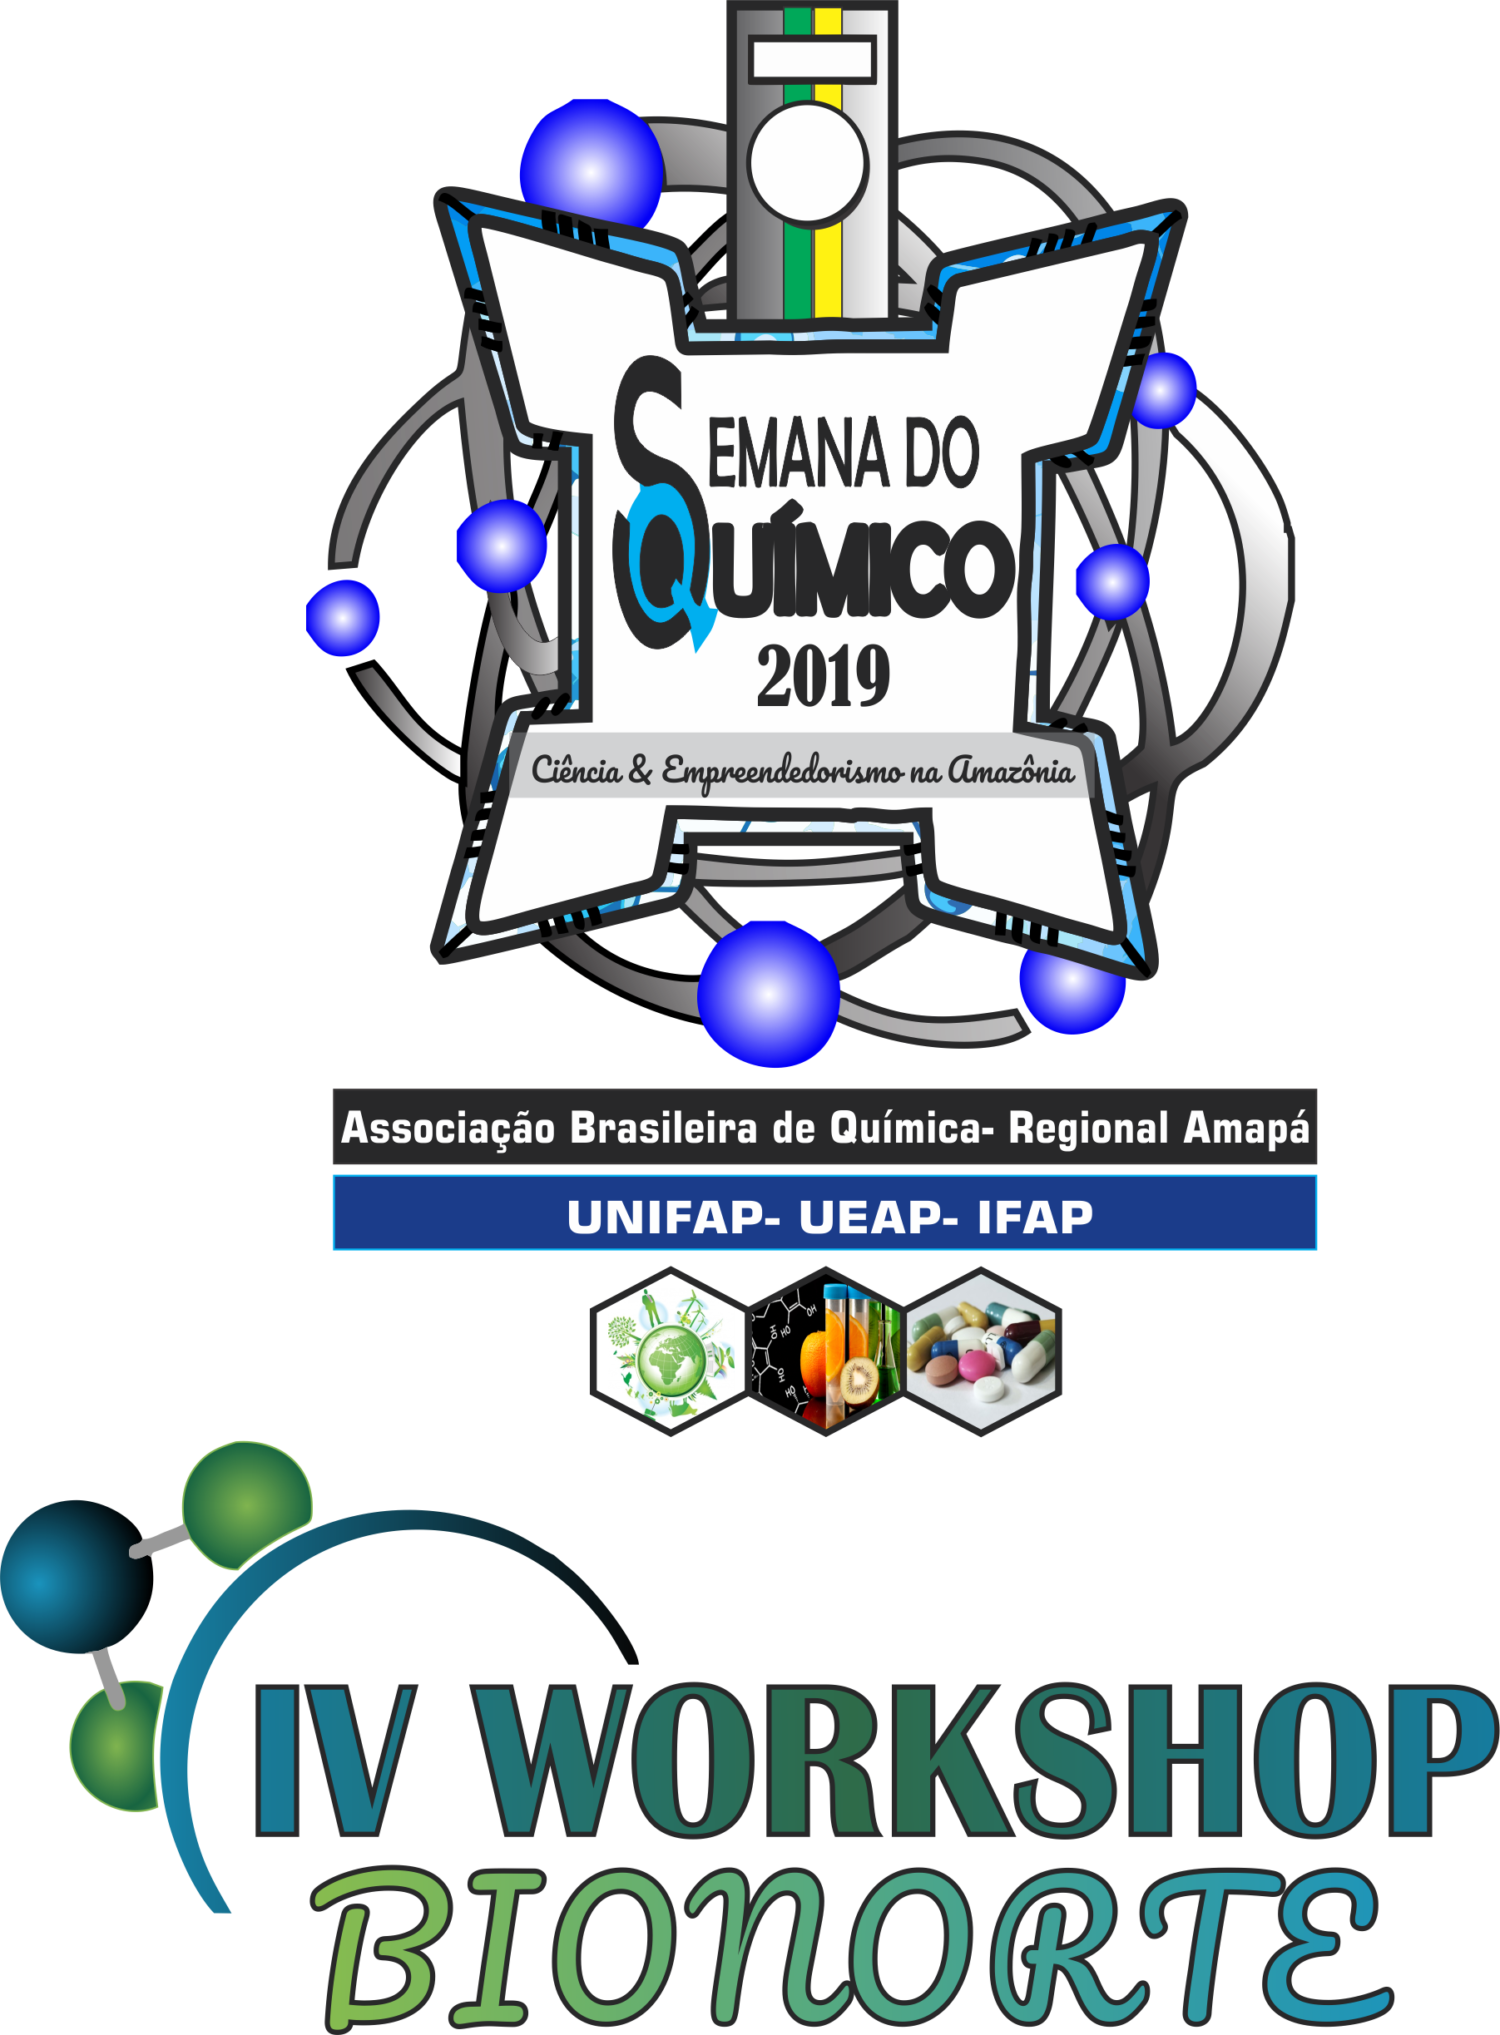 Semana do Químico 2019 e IV Workshop da Rede Bionorte